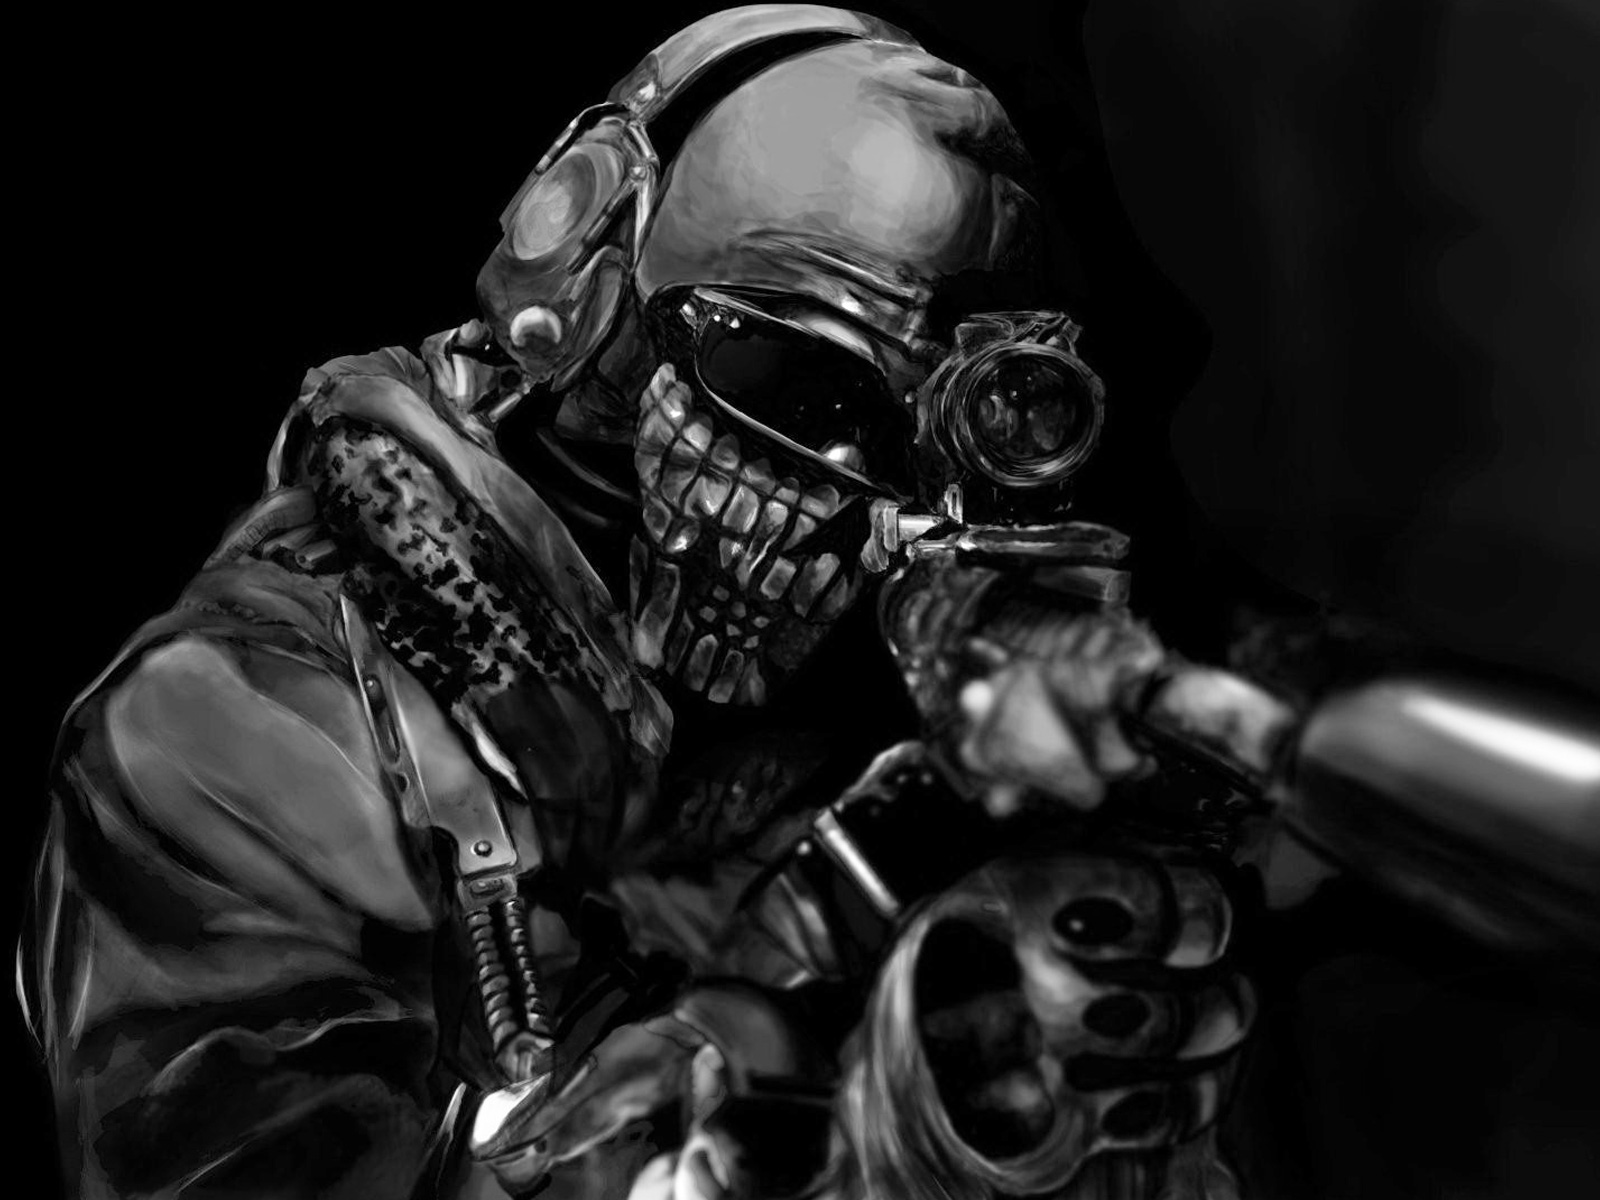 Call of Duty Ghosts Wallpapers 1600x1200 in HD cod ghosts | Call ...